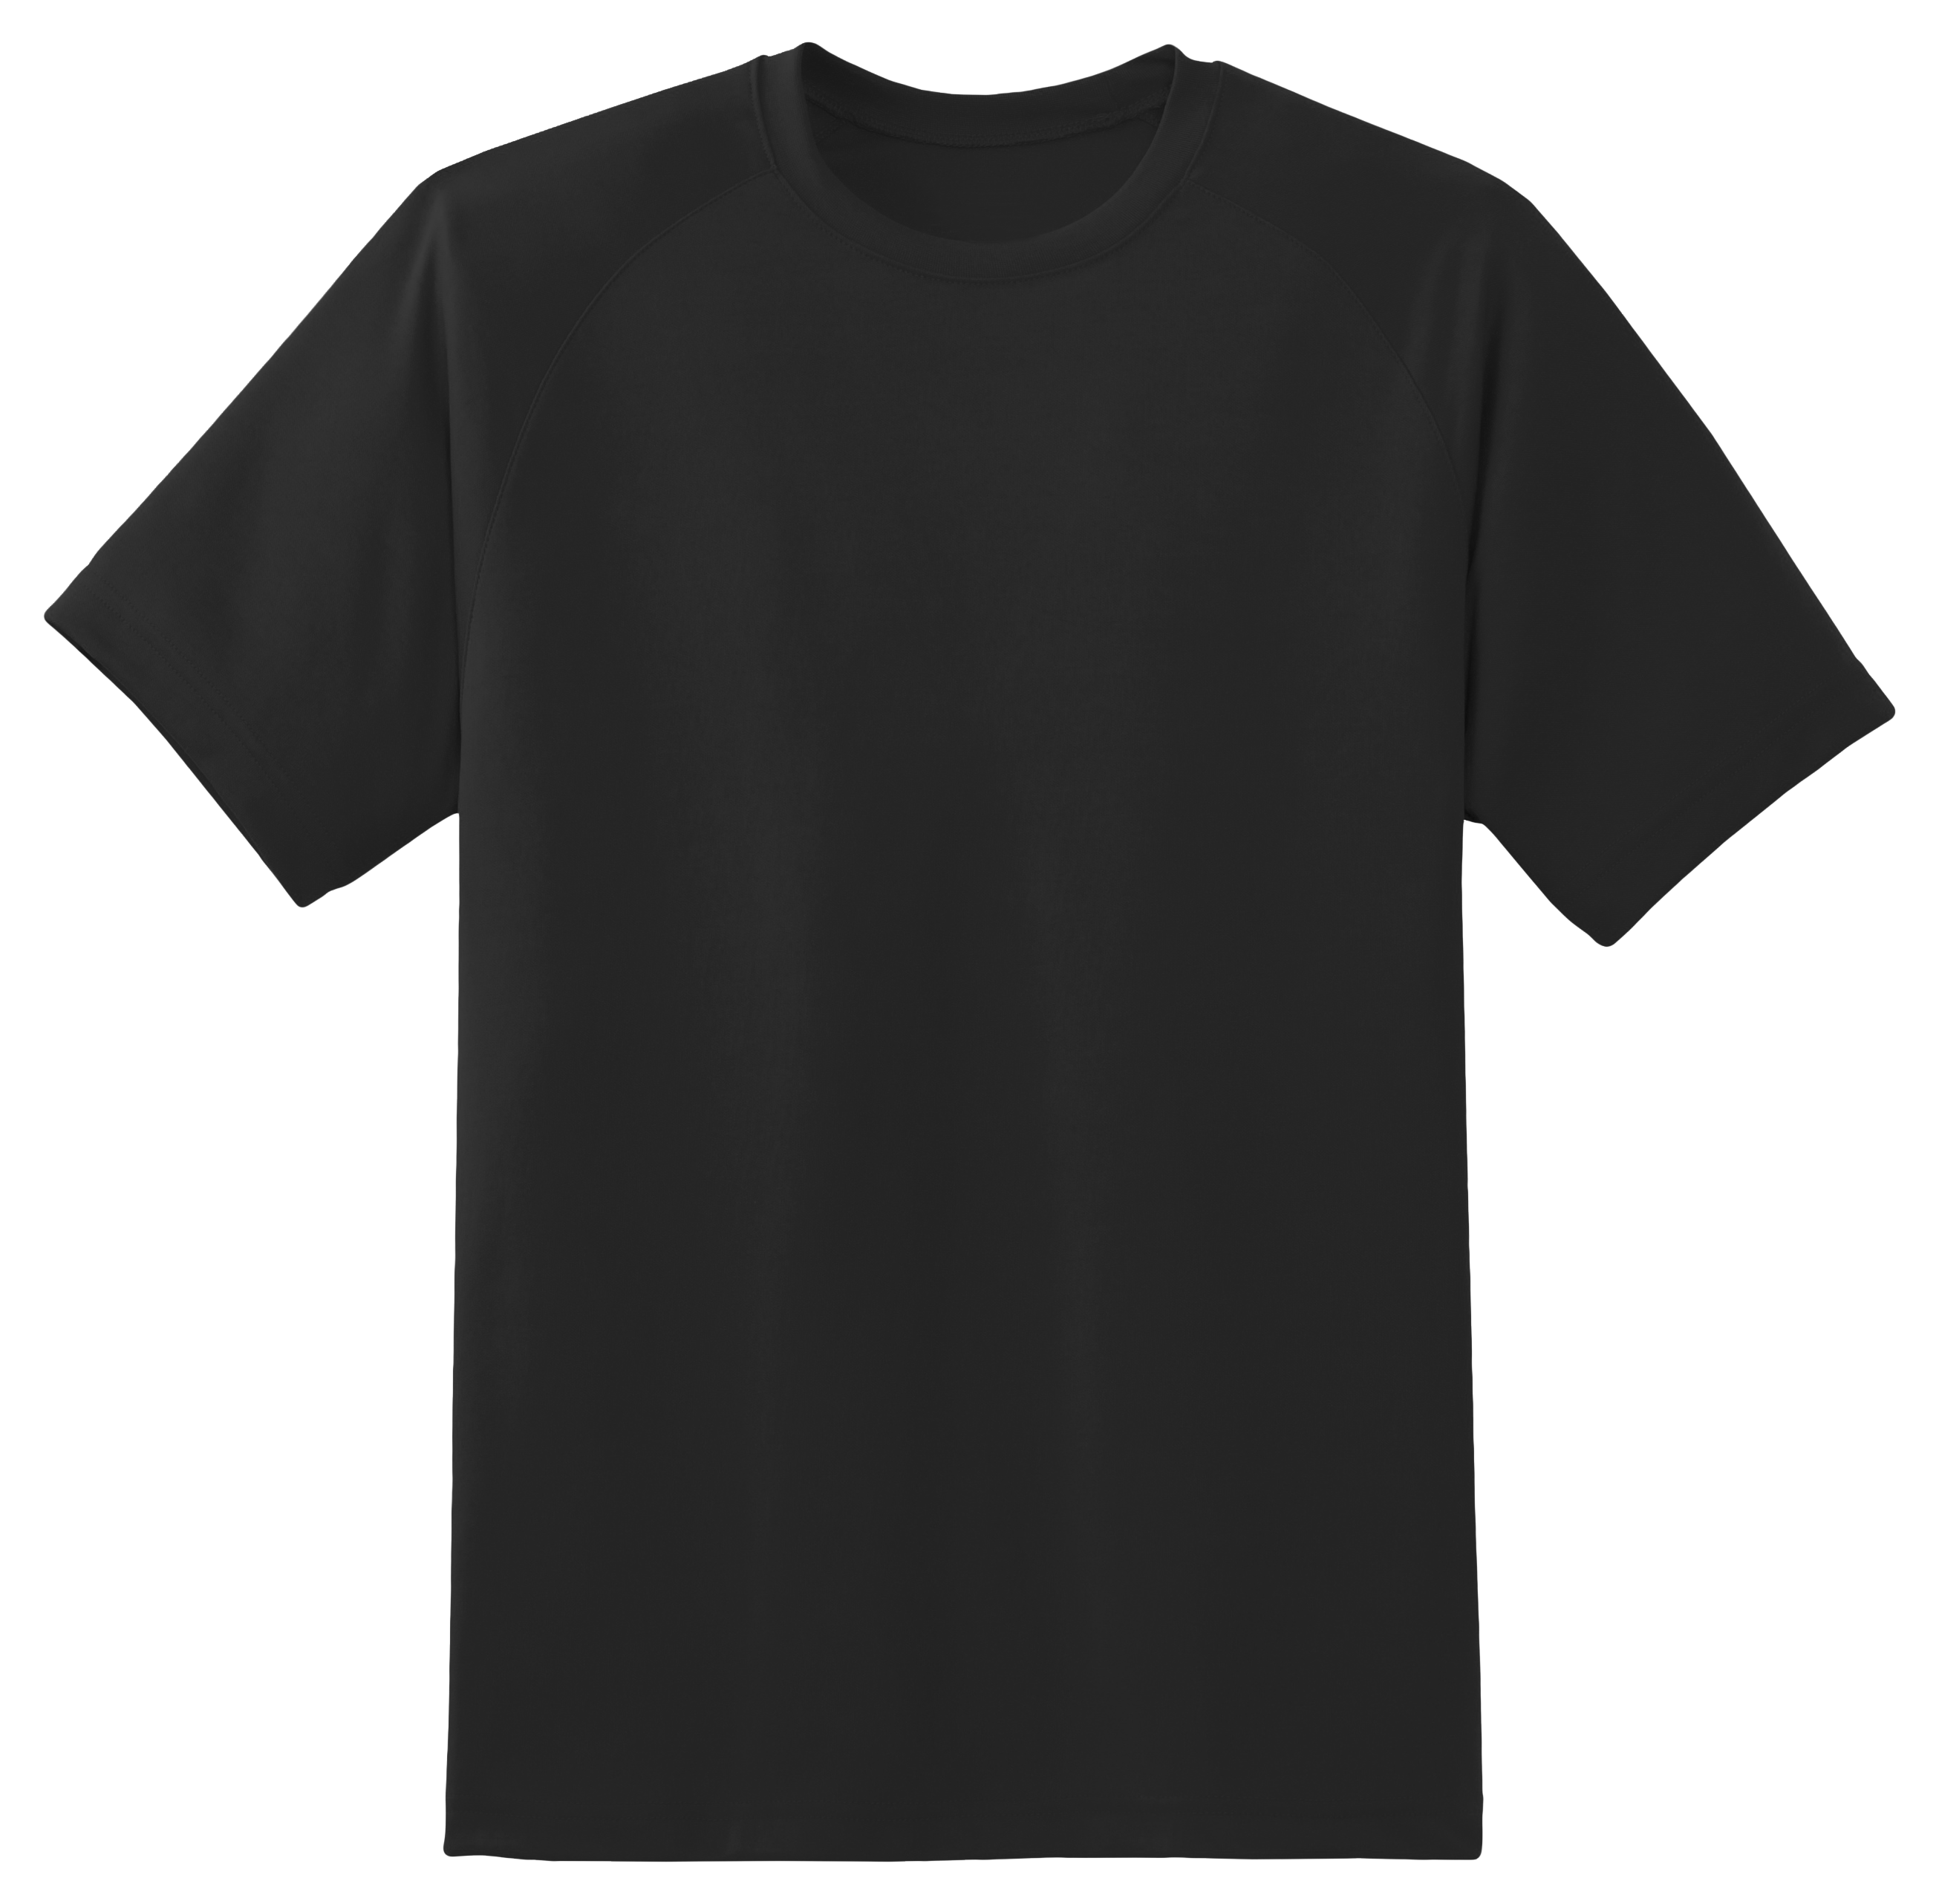 Black tshirt front and back png. T shirt image purepng